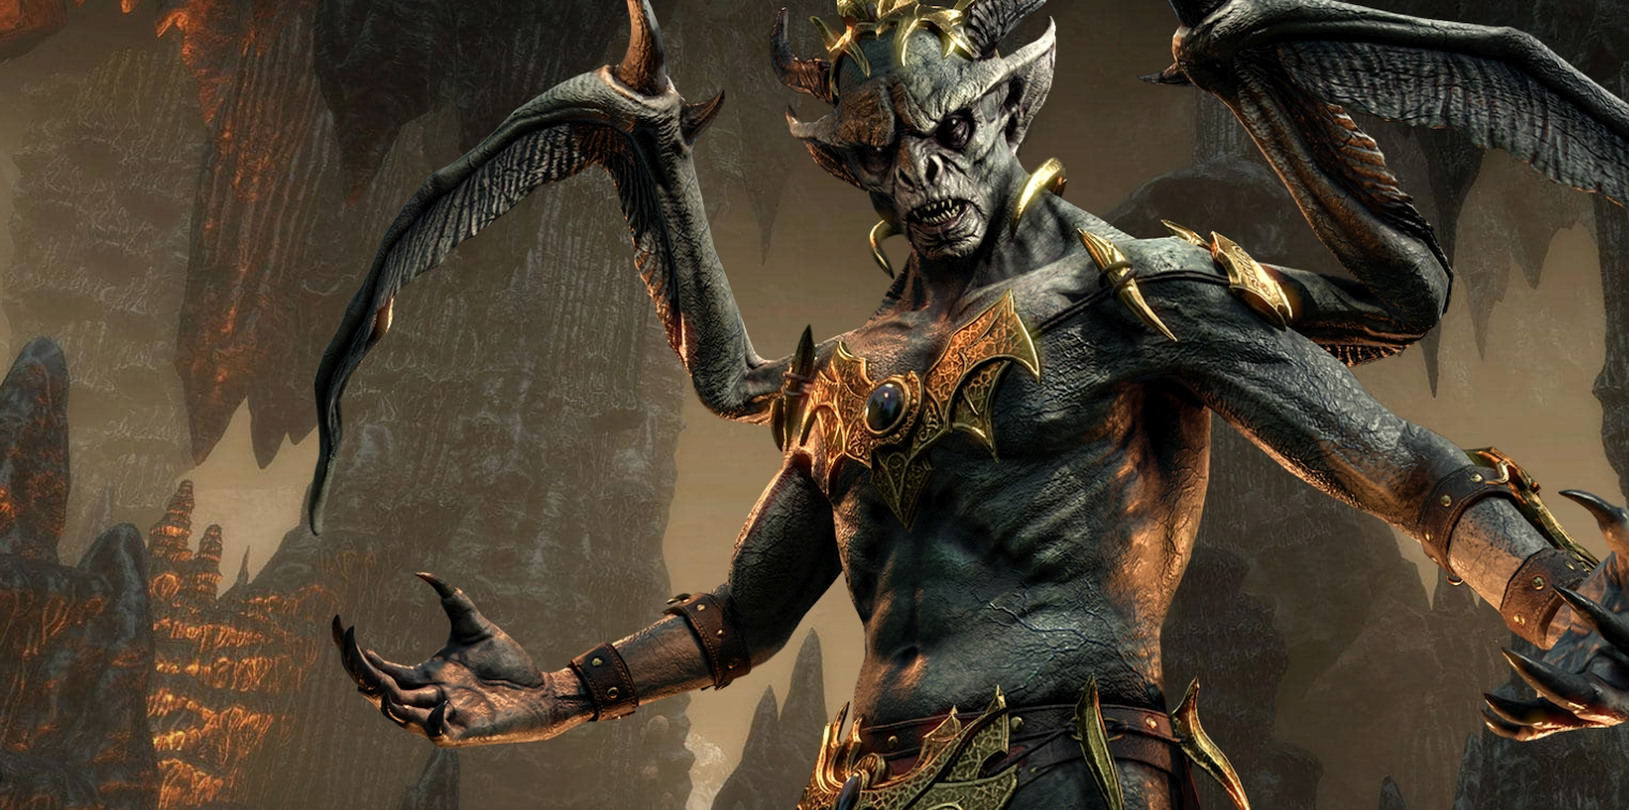 The Elder Scrolls Online: Greymoor Collector's Edition Announced Including Preorder Bonuses